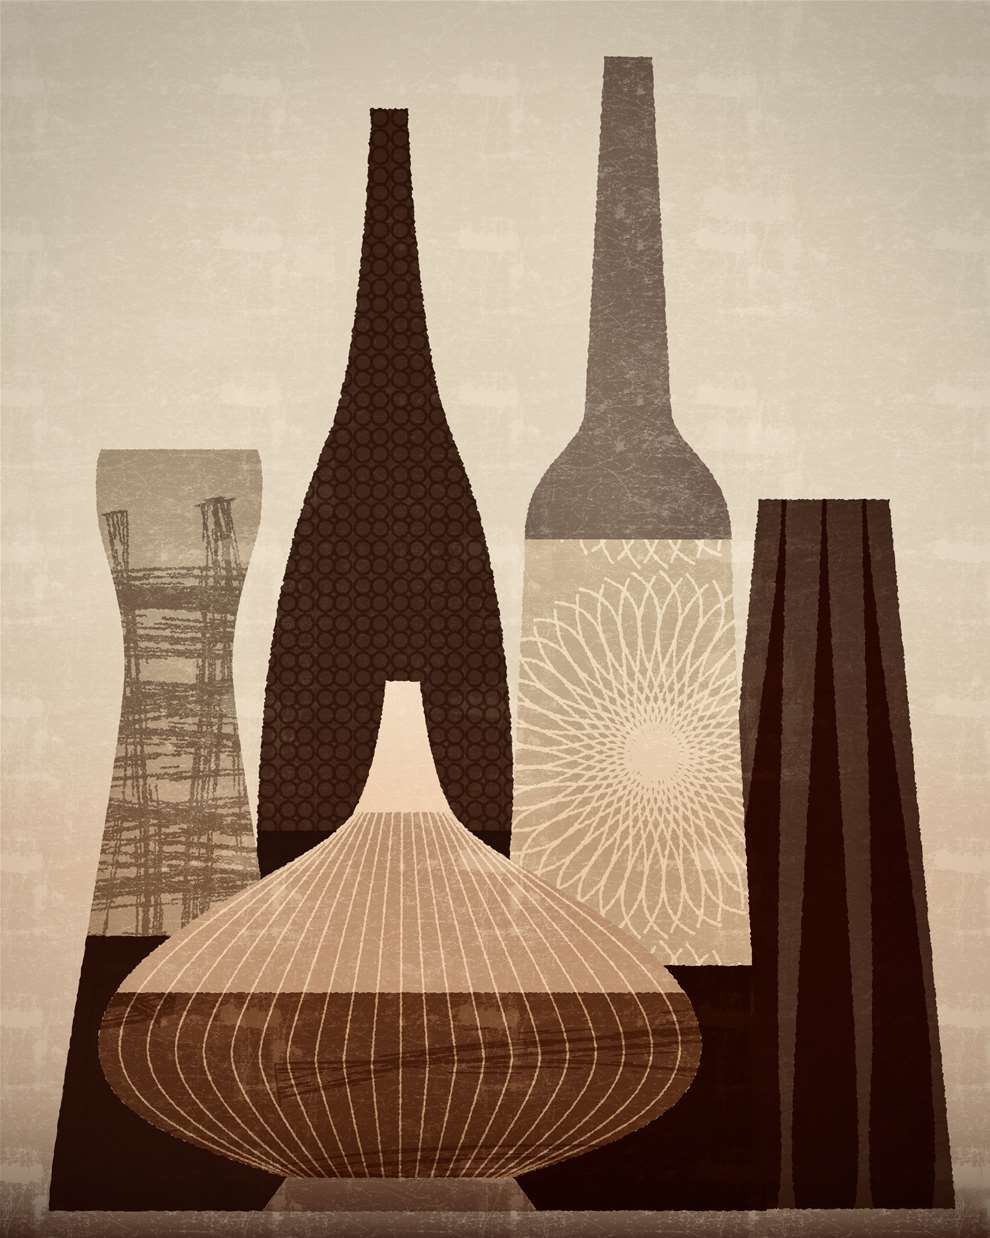 Paul Wearing, Textural digital illustration of vases, with detailed line patterns.